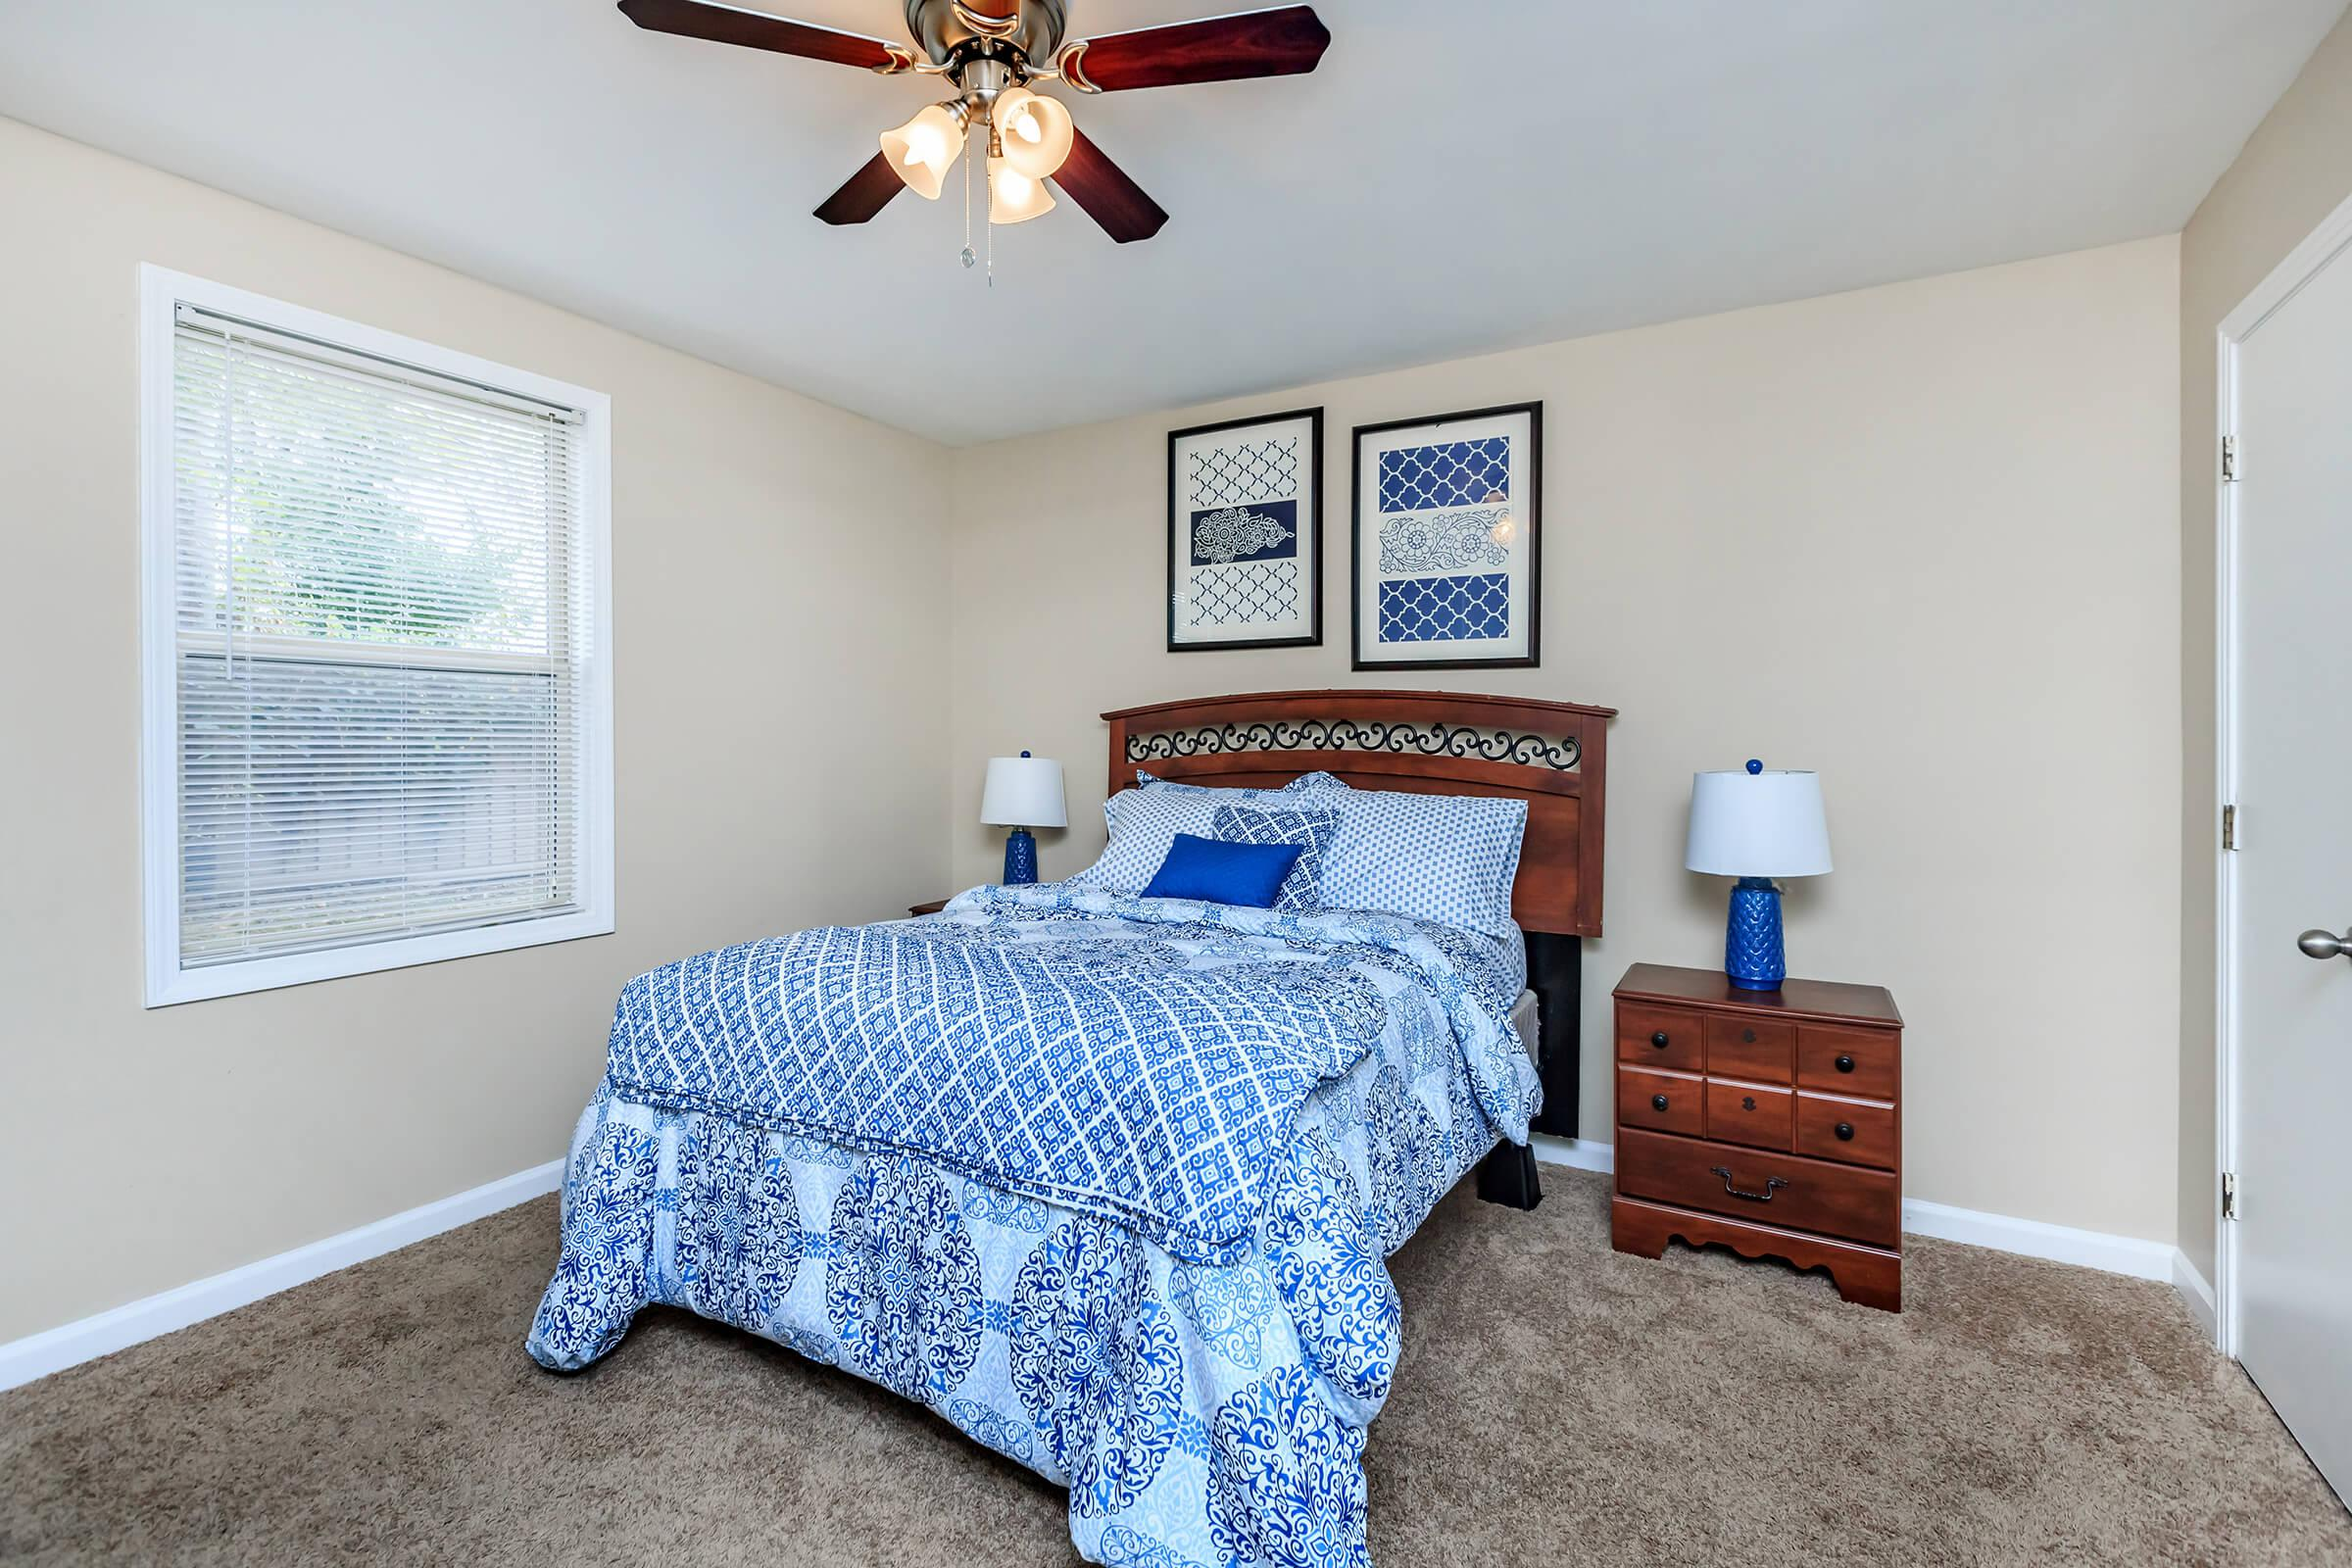 a bedroom with a blue blanket